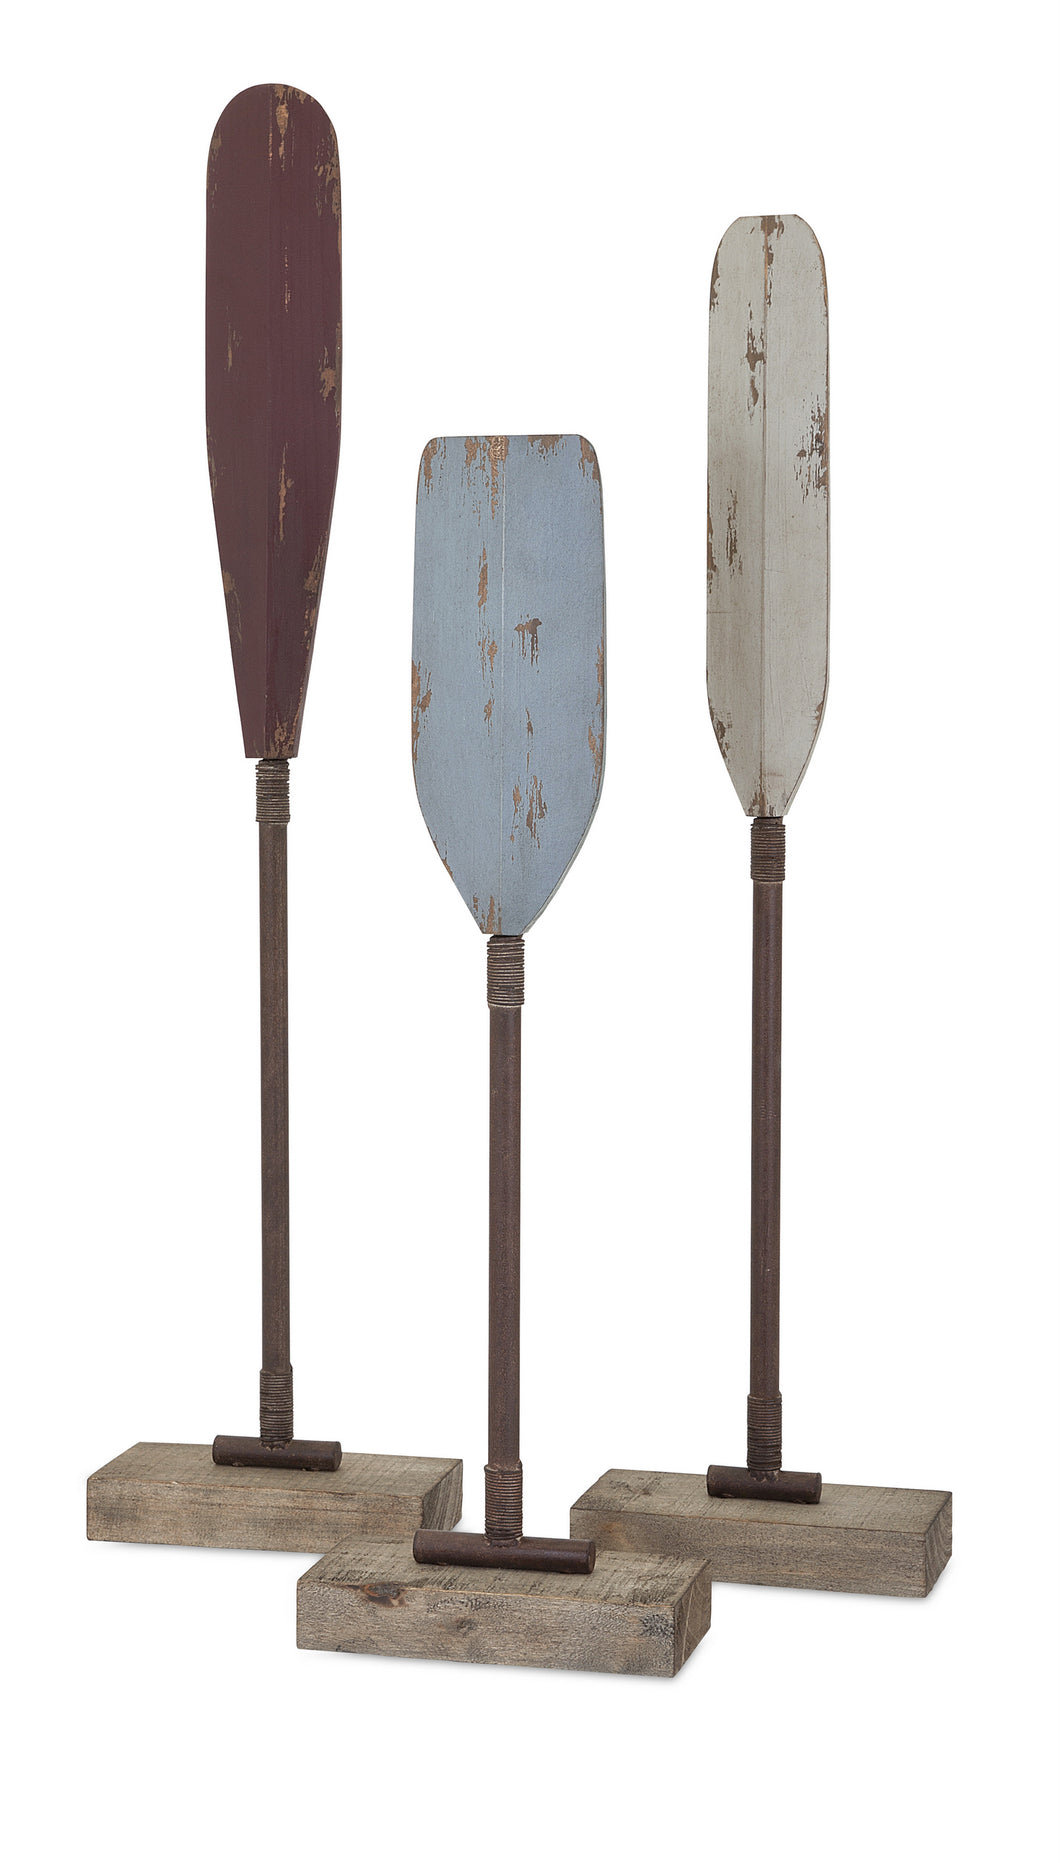 Delightful Edgar Ores Wood and Metal - Set of 3